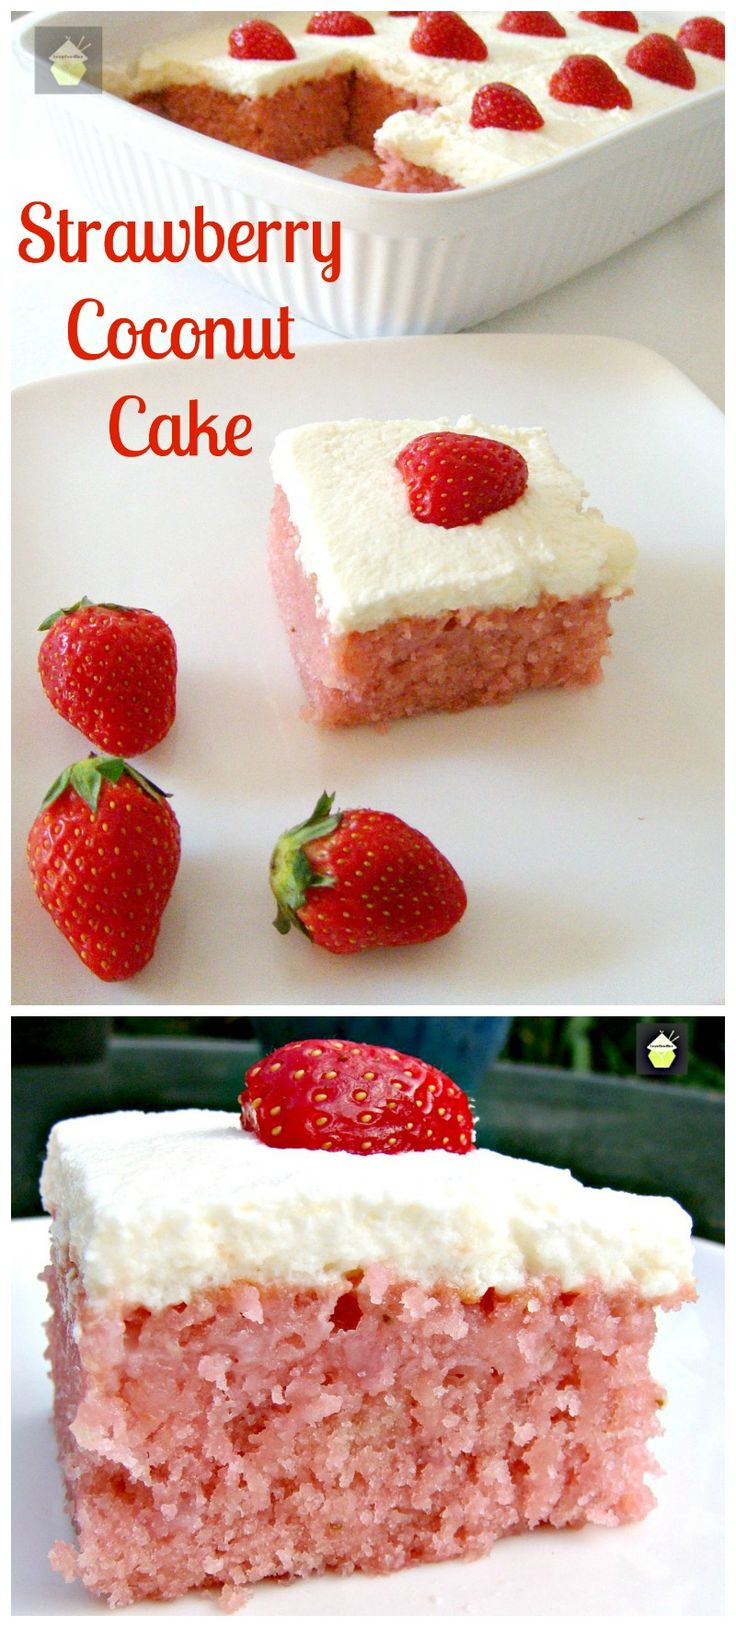 Strawberry & Coconut Cake (Poke Cake) with Fresh Whipped Cream. Easy made from scratch recipe. Yummy!